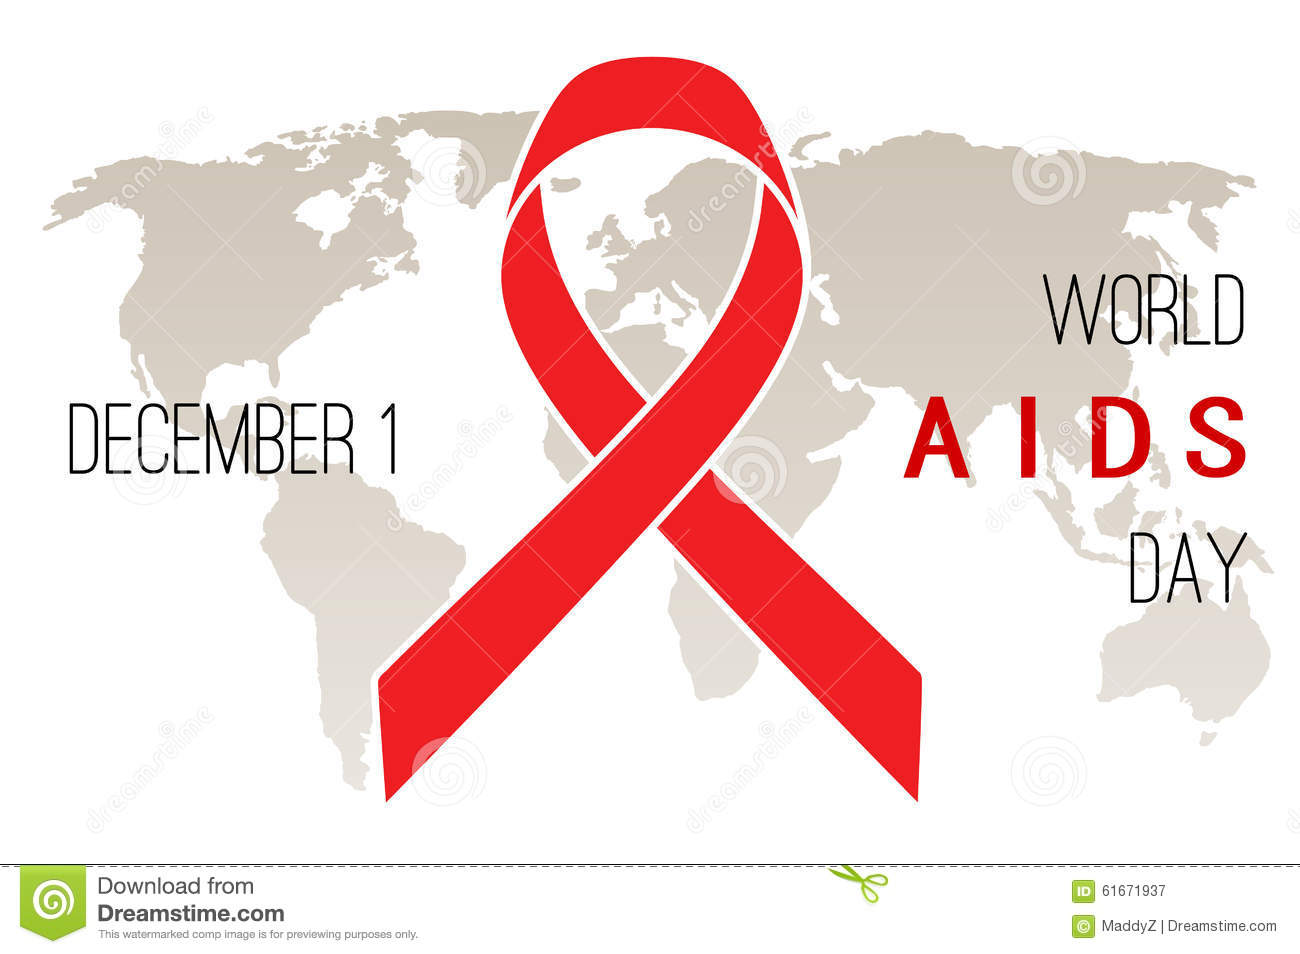 World AIDS Day poster stock vector. Illustration of ...